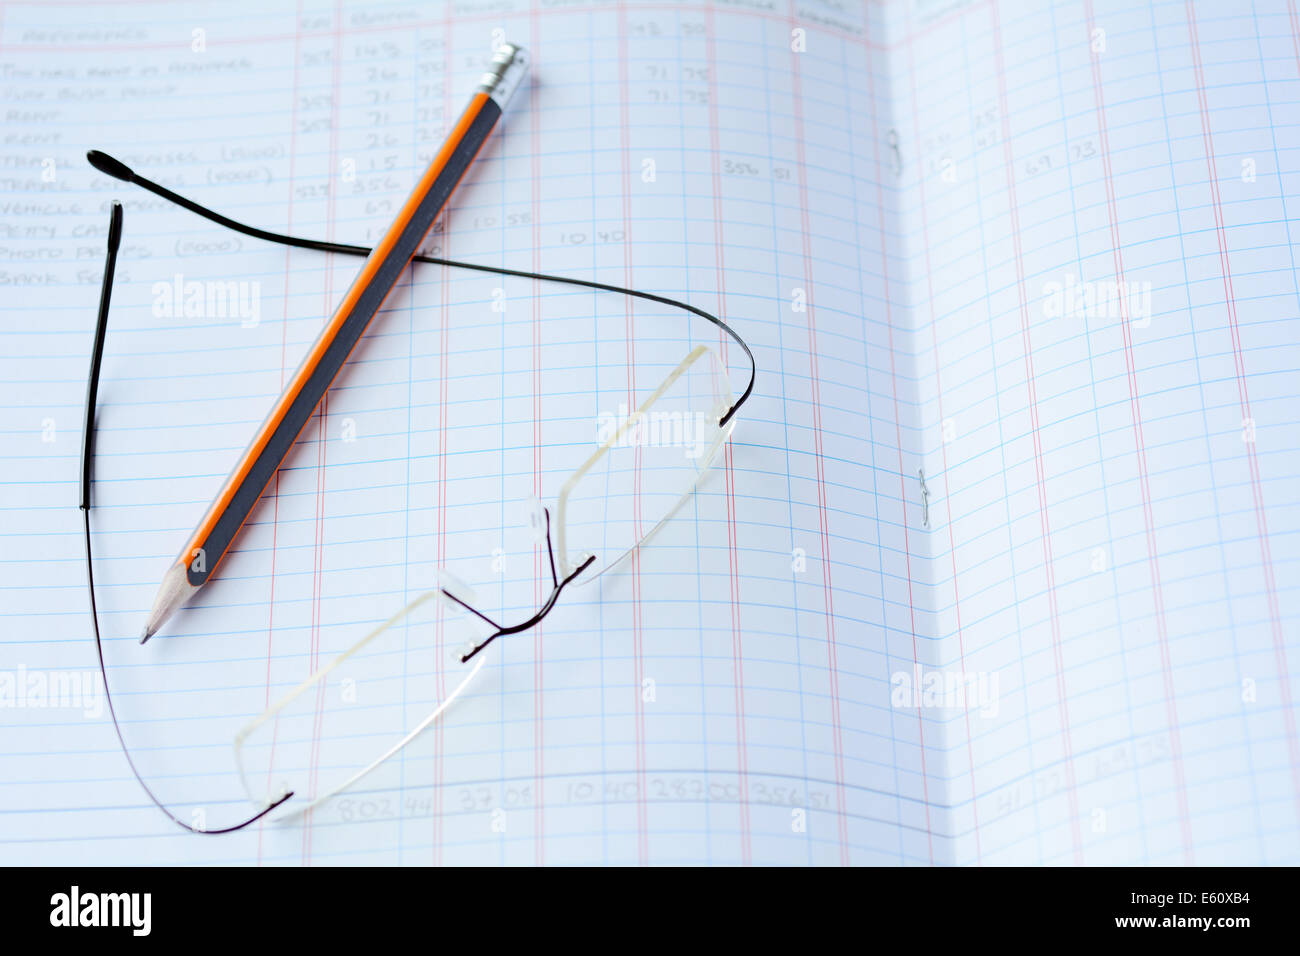 Reading eyeglasses and a pencil on annual Income tax report bookkeeping. Concept photo of tax, taxation, income, - Stock Image